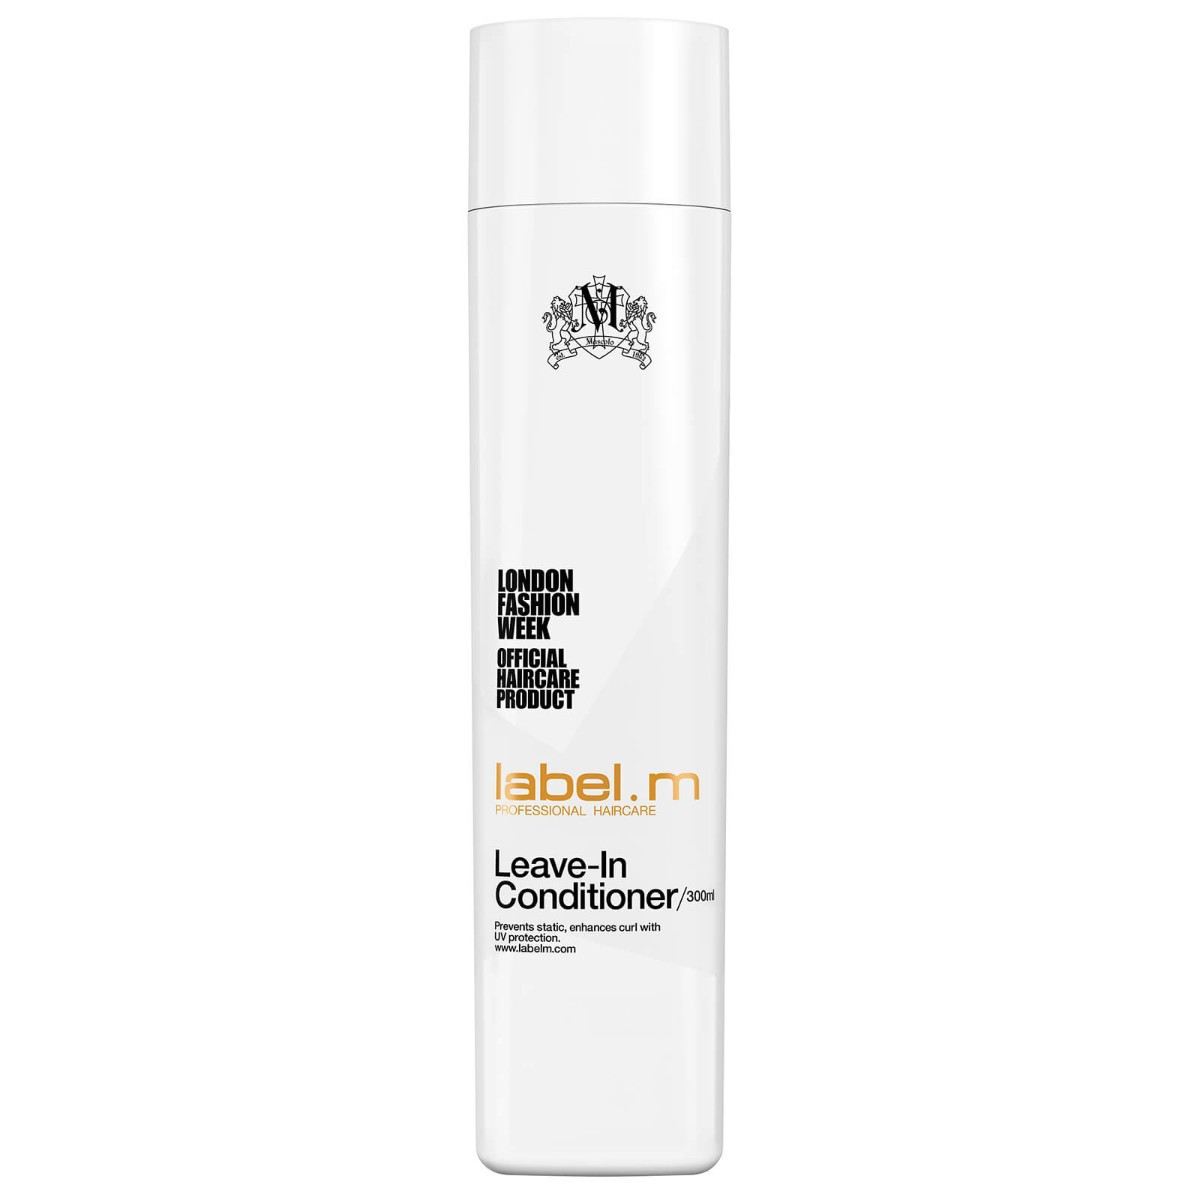 Label.m Leave-In kondicionieris 300ml